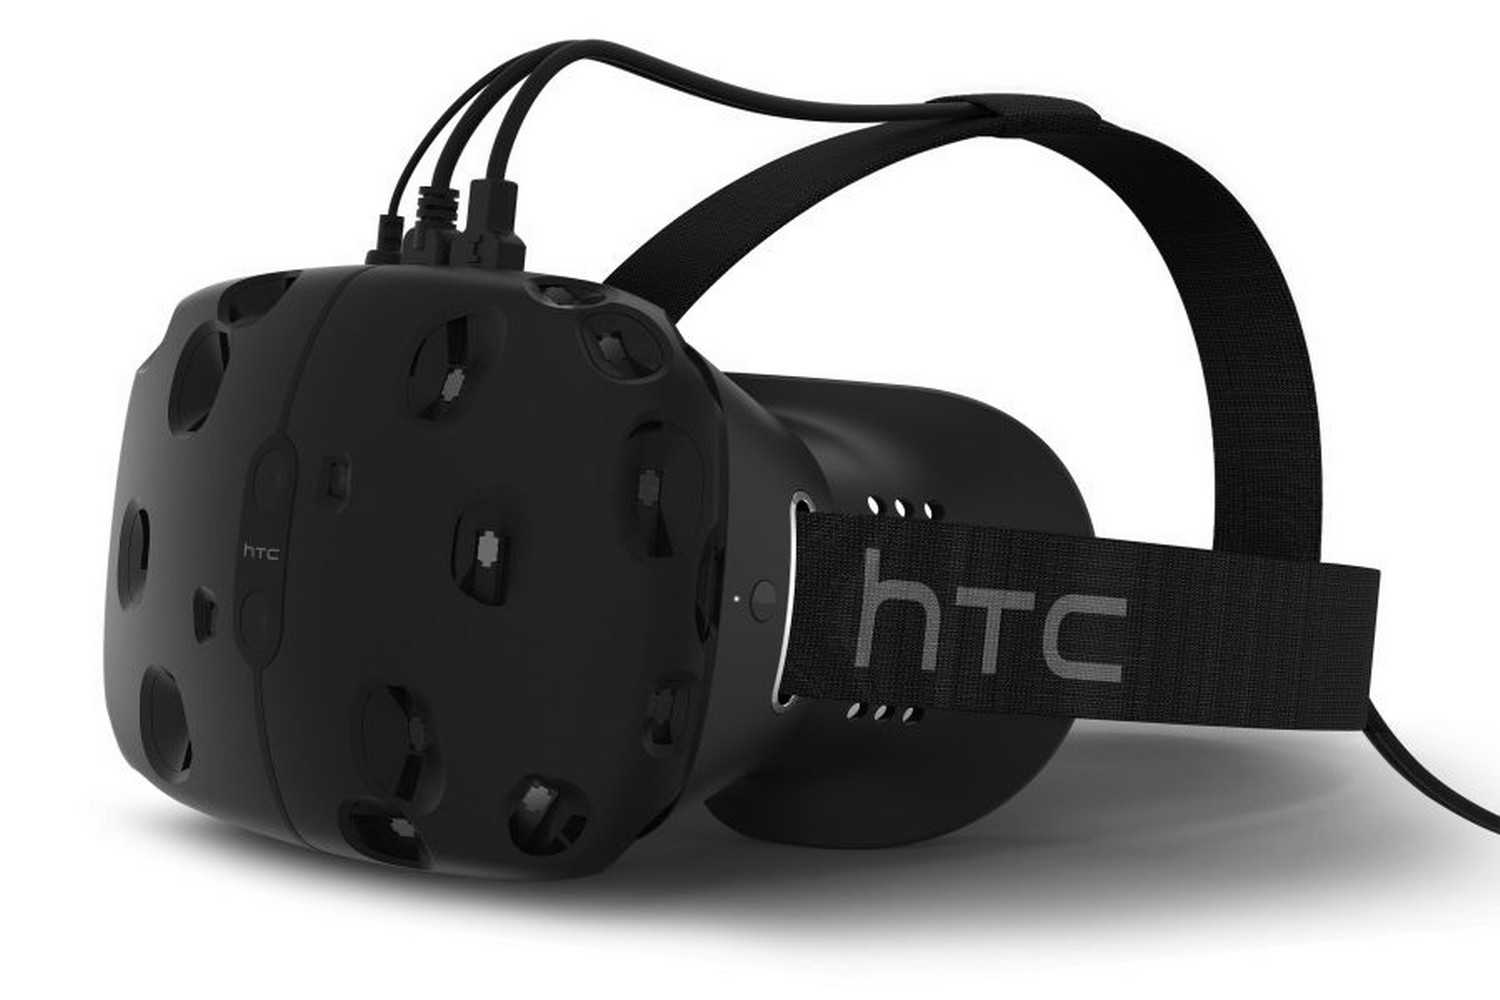 HTC Vive (Steam VR)